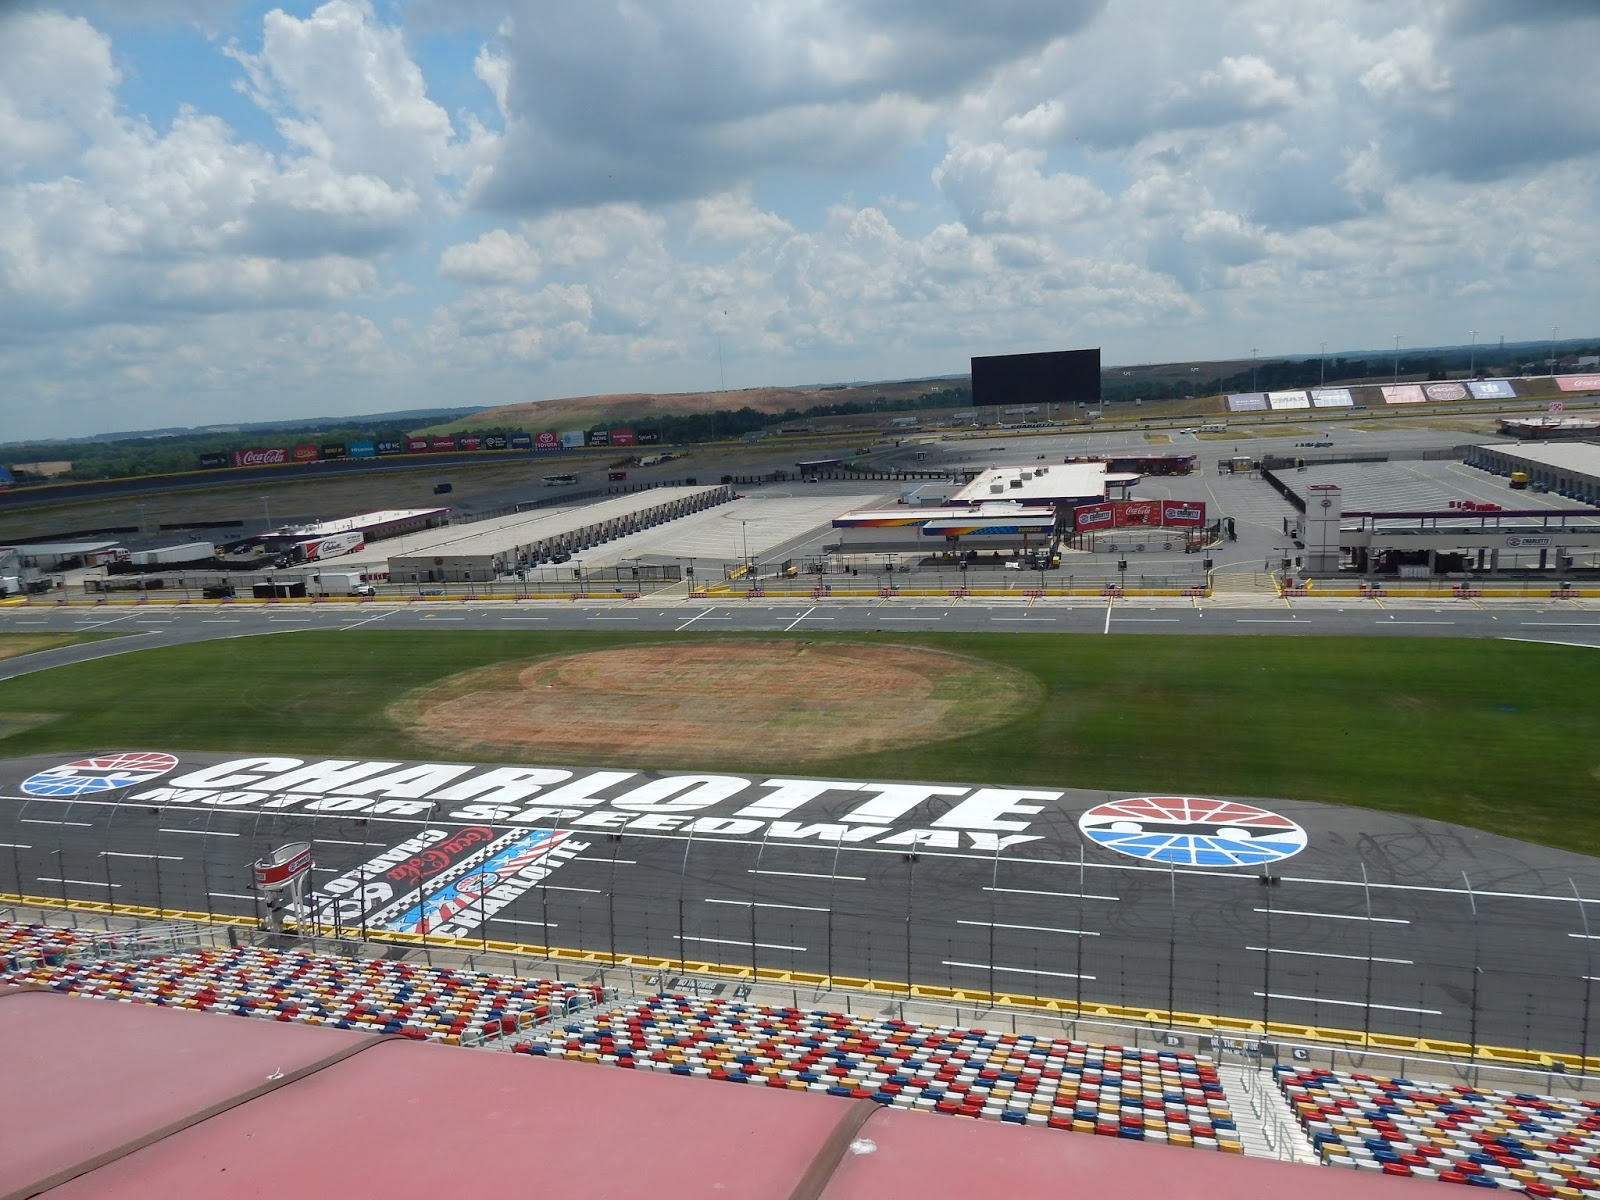 Charlotte motor speedway seating for Tickets to charlotte motor speedway